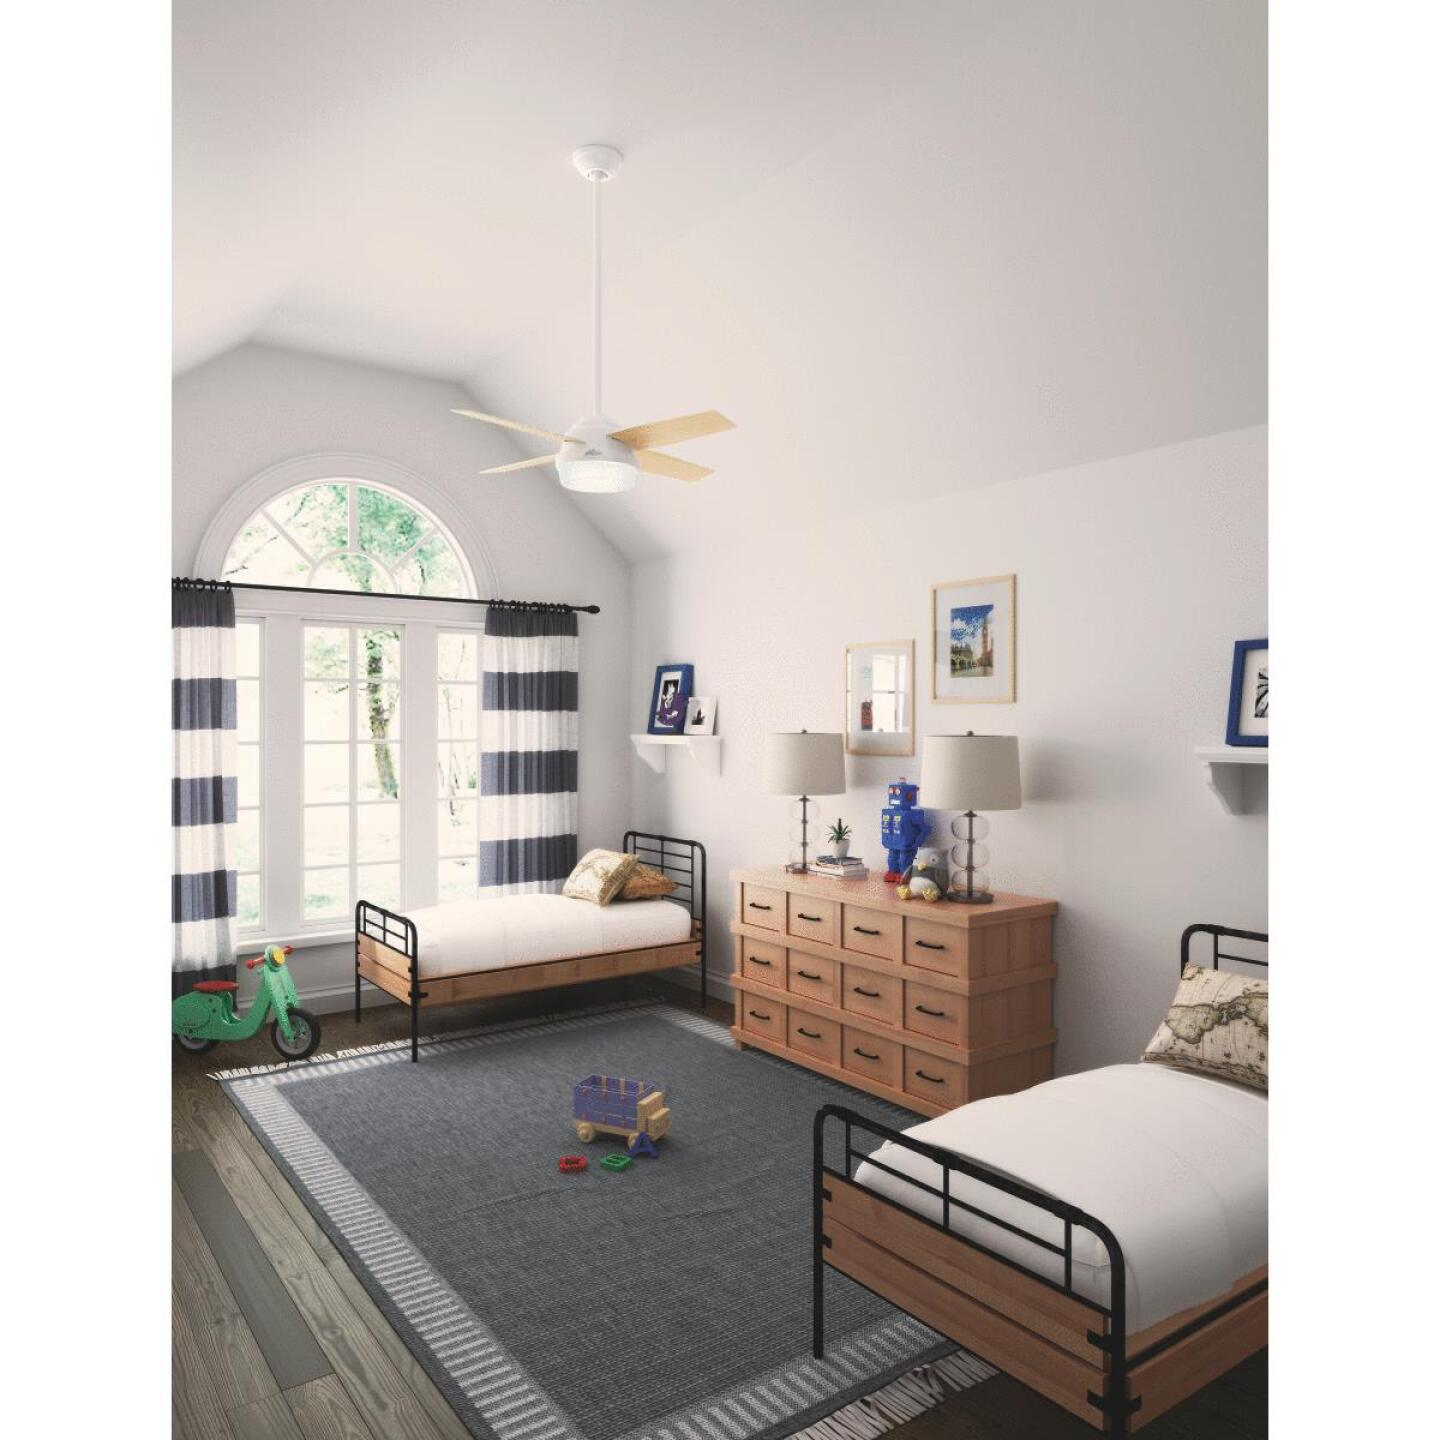 Hunter Dempsey 44 In. Fresh White Ceiling Fan with Light Kit Image 2